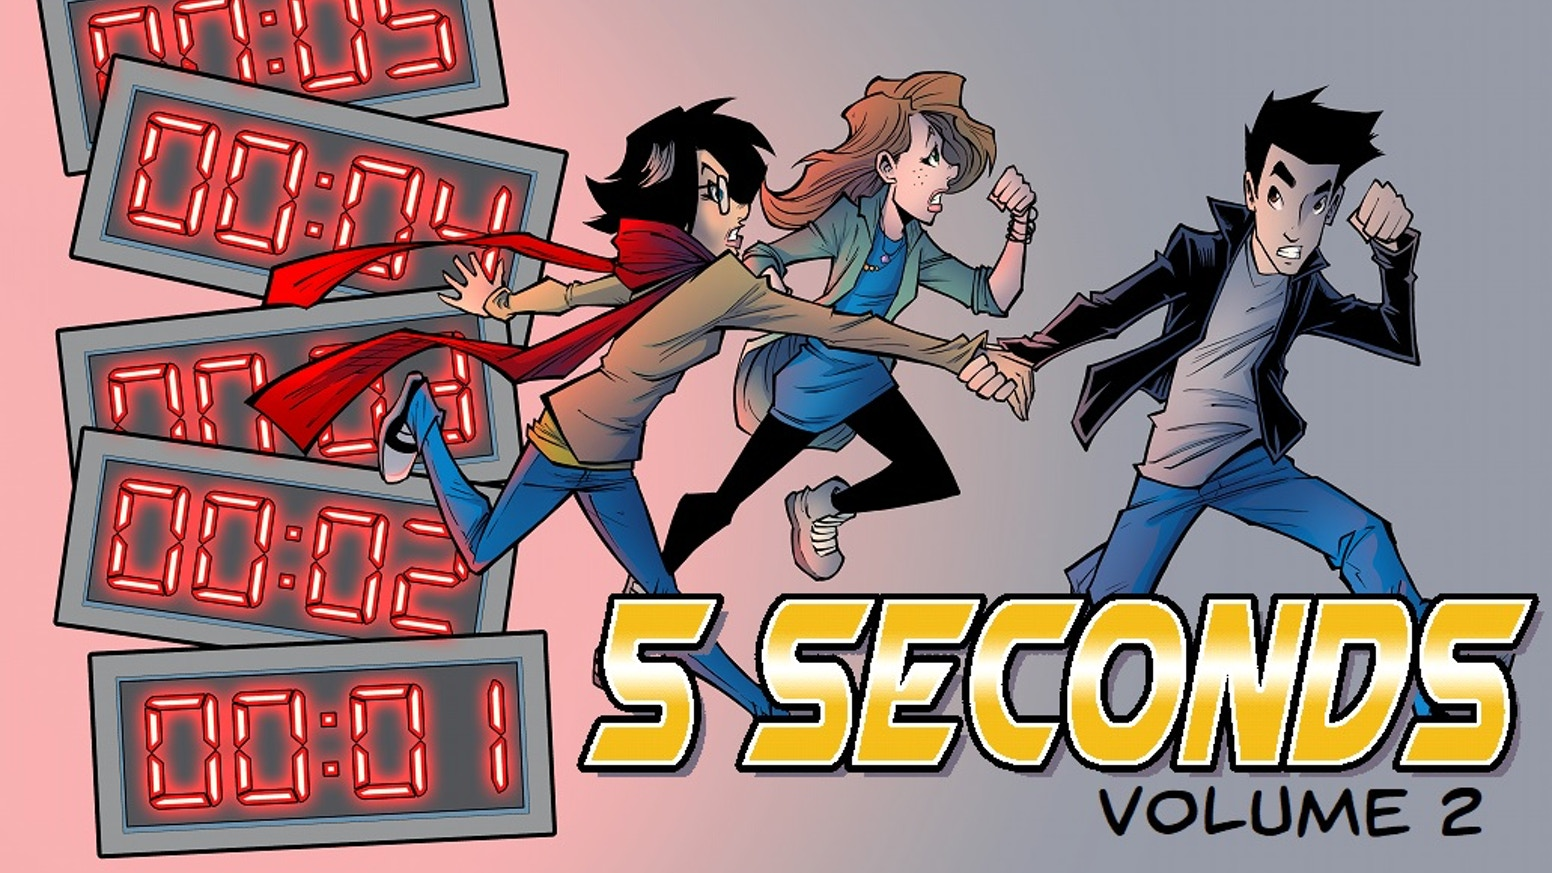 5 Seconds - Volume 2